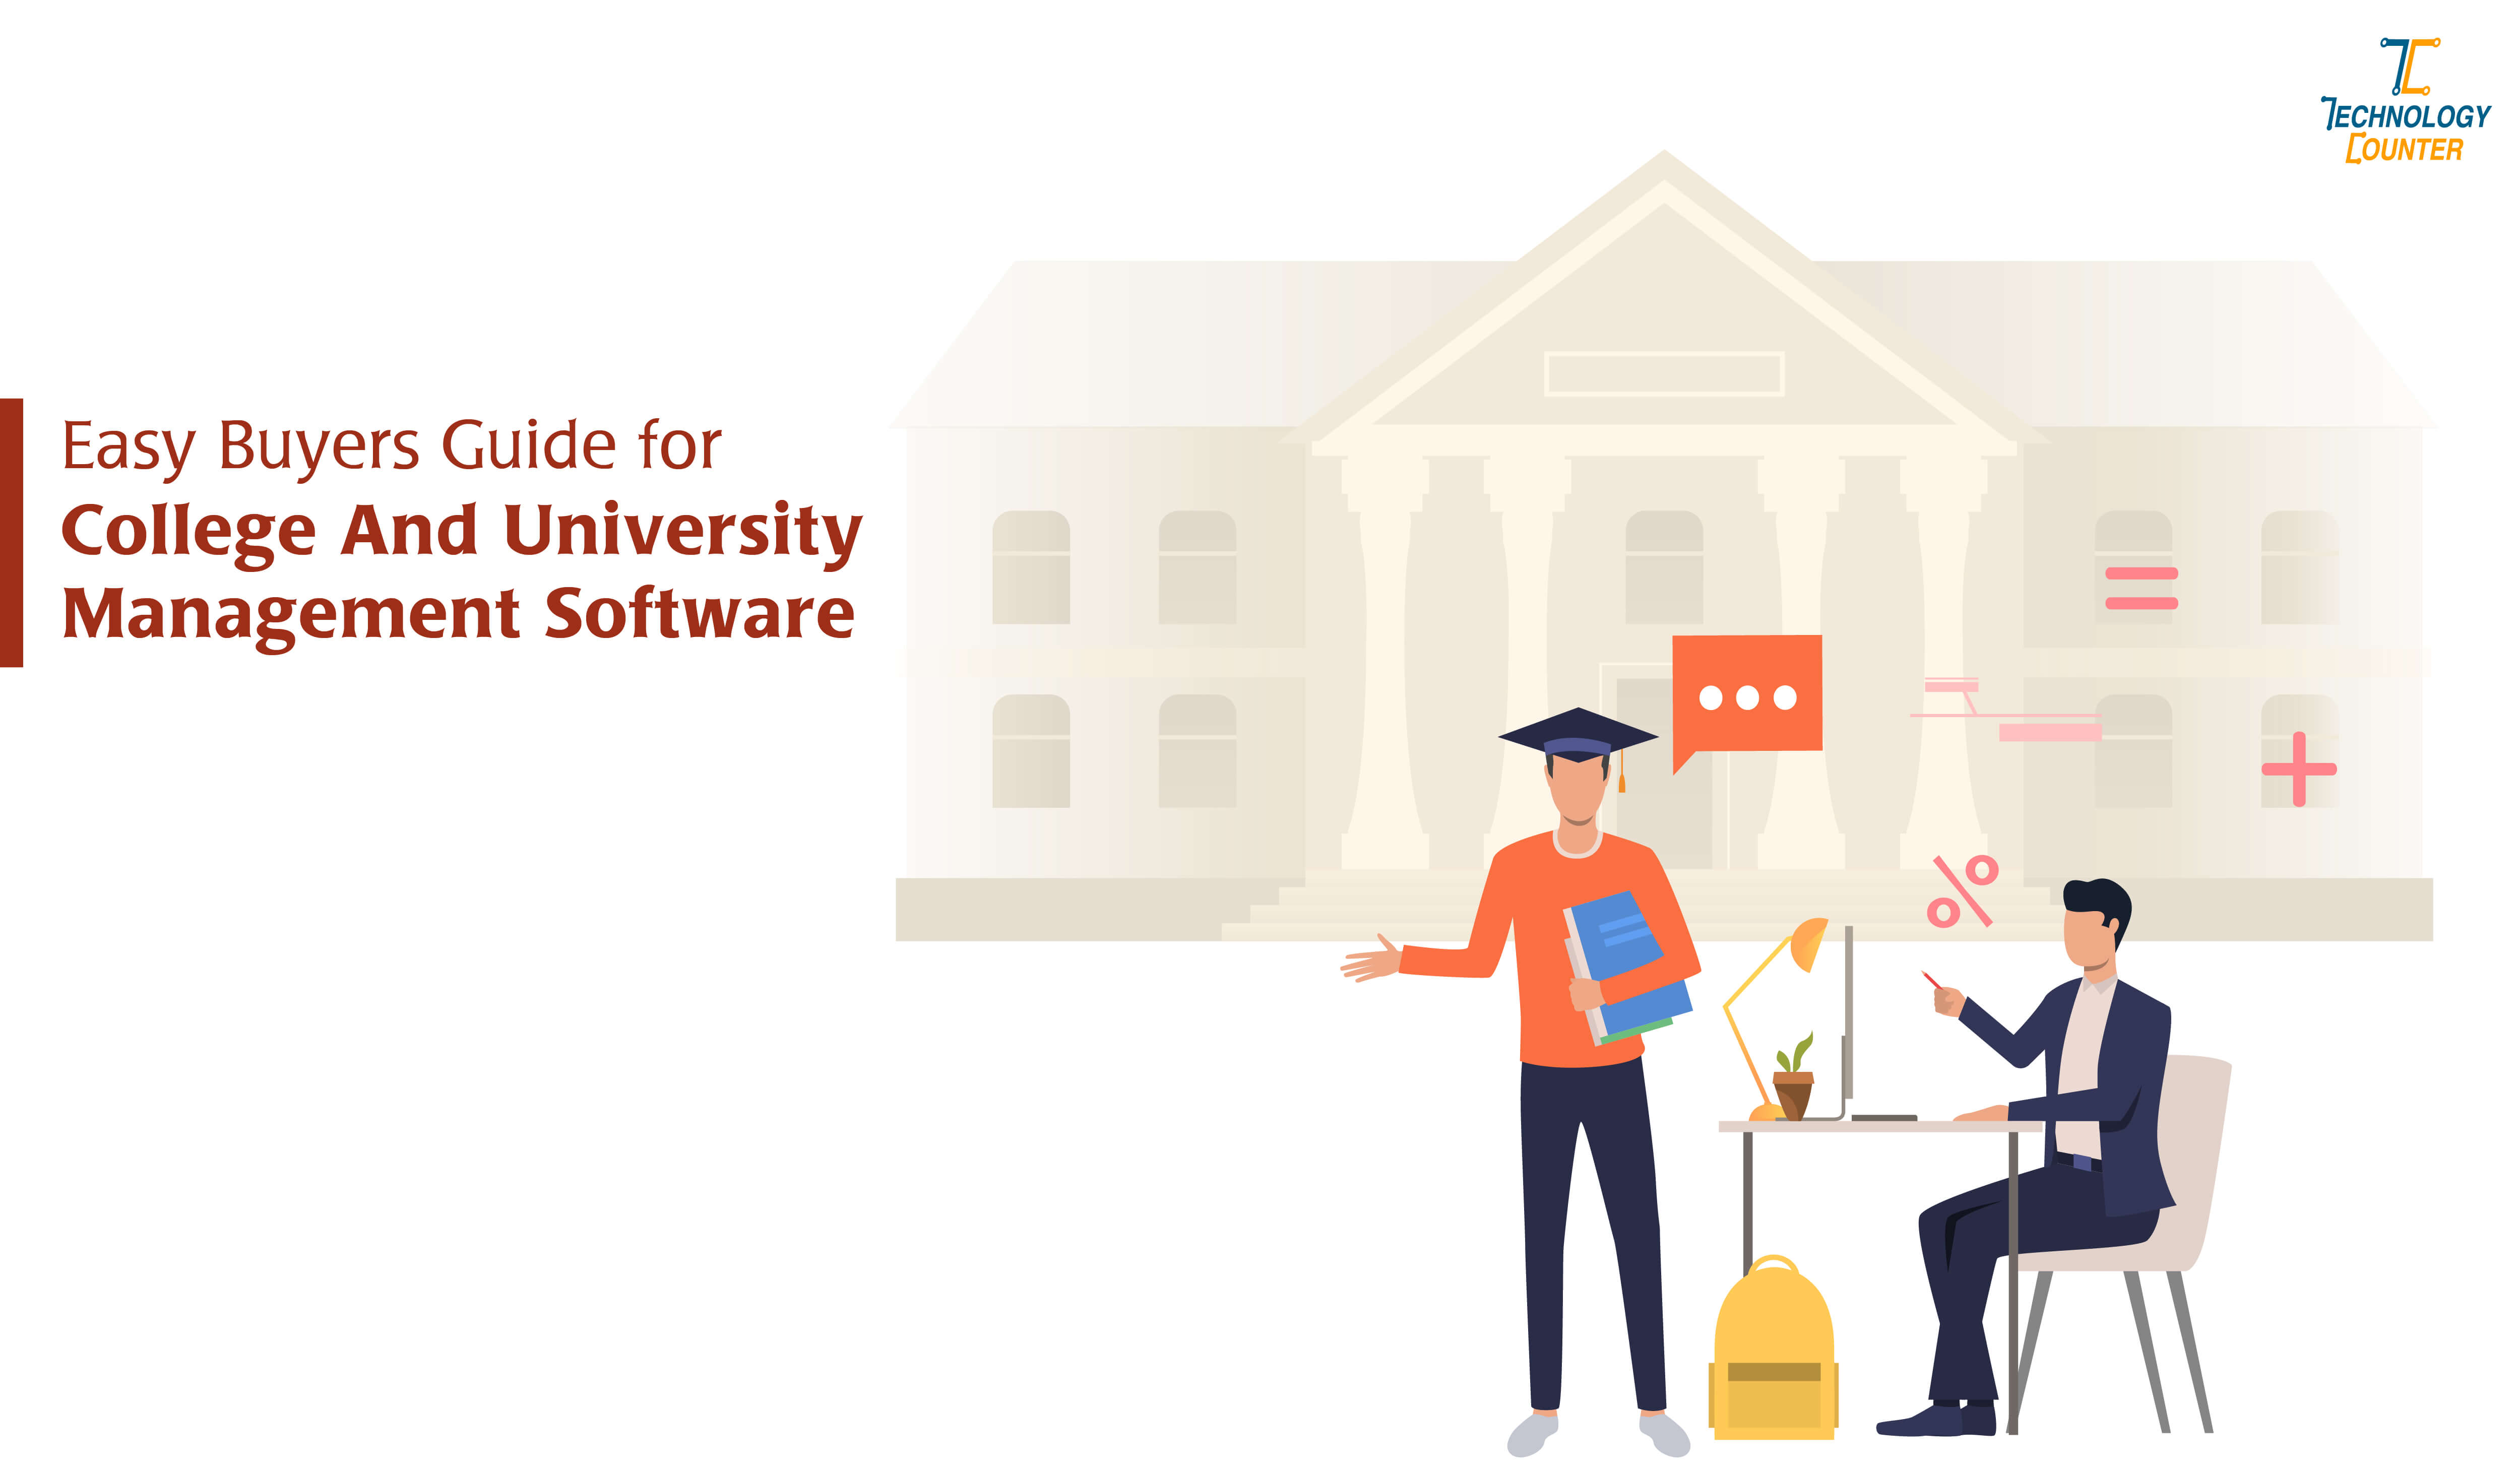 Easy Buyers Guide for College And University Management Software